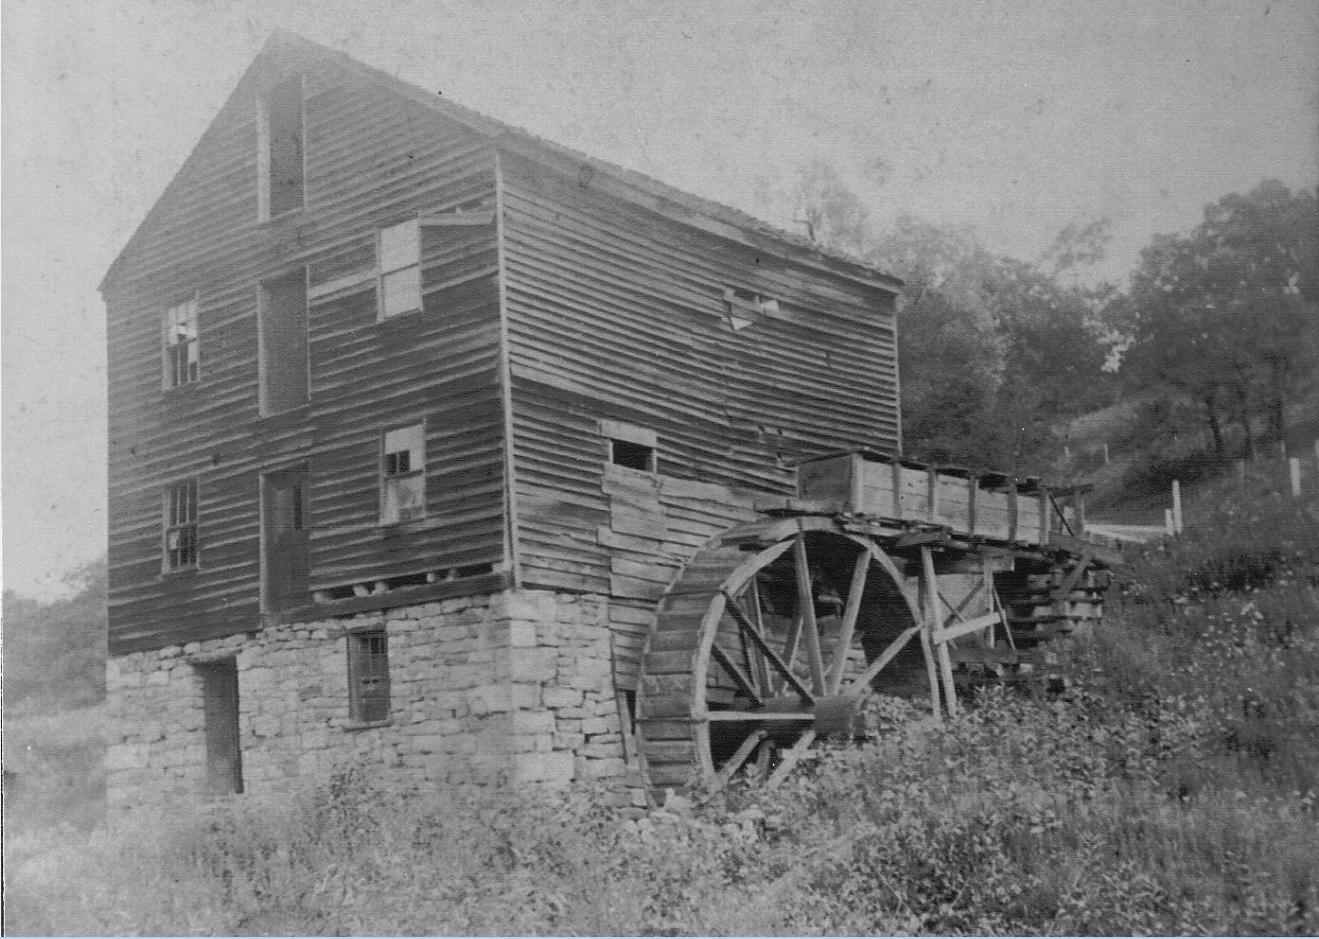 Water powered mill at Kennels Mills, PA